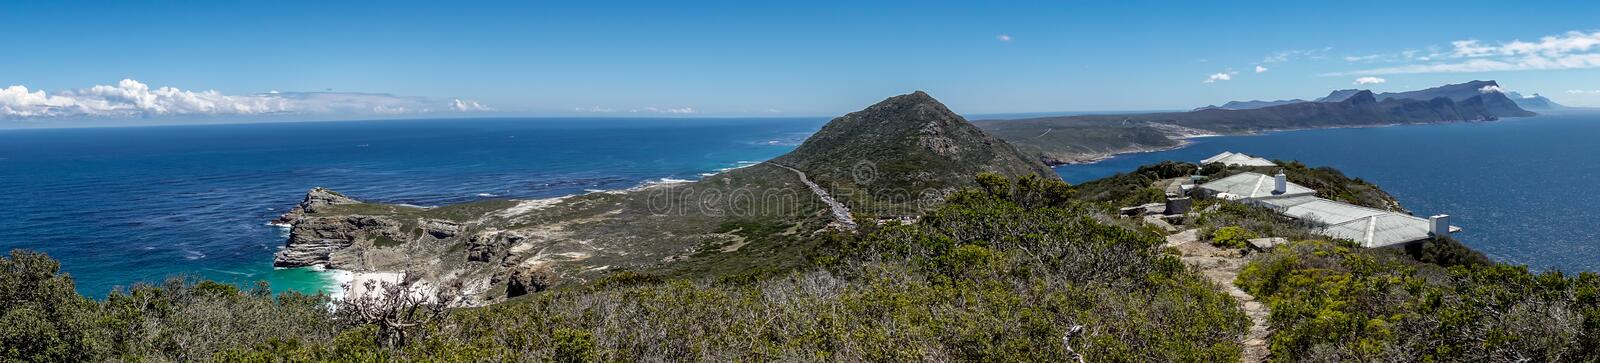 Scenic beauty Panorama of Cape of Good Hope stock images